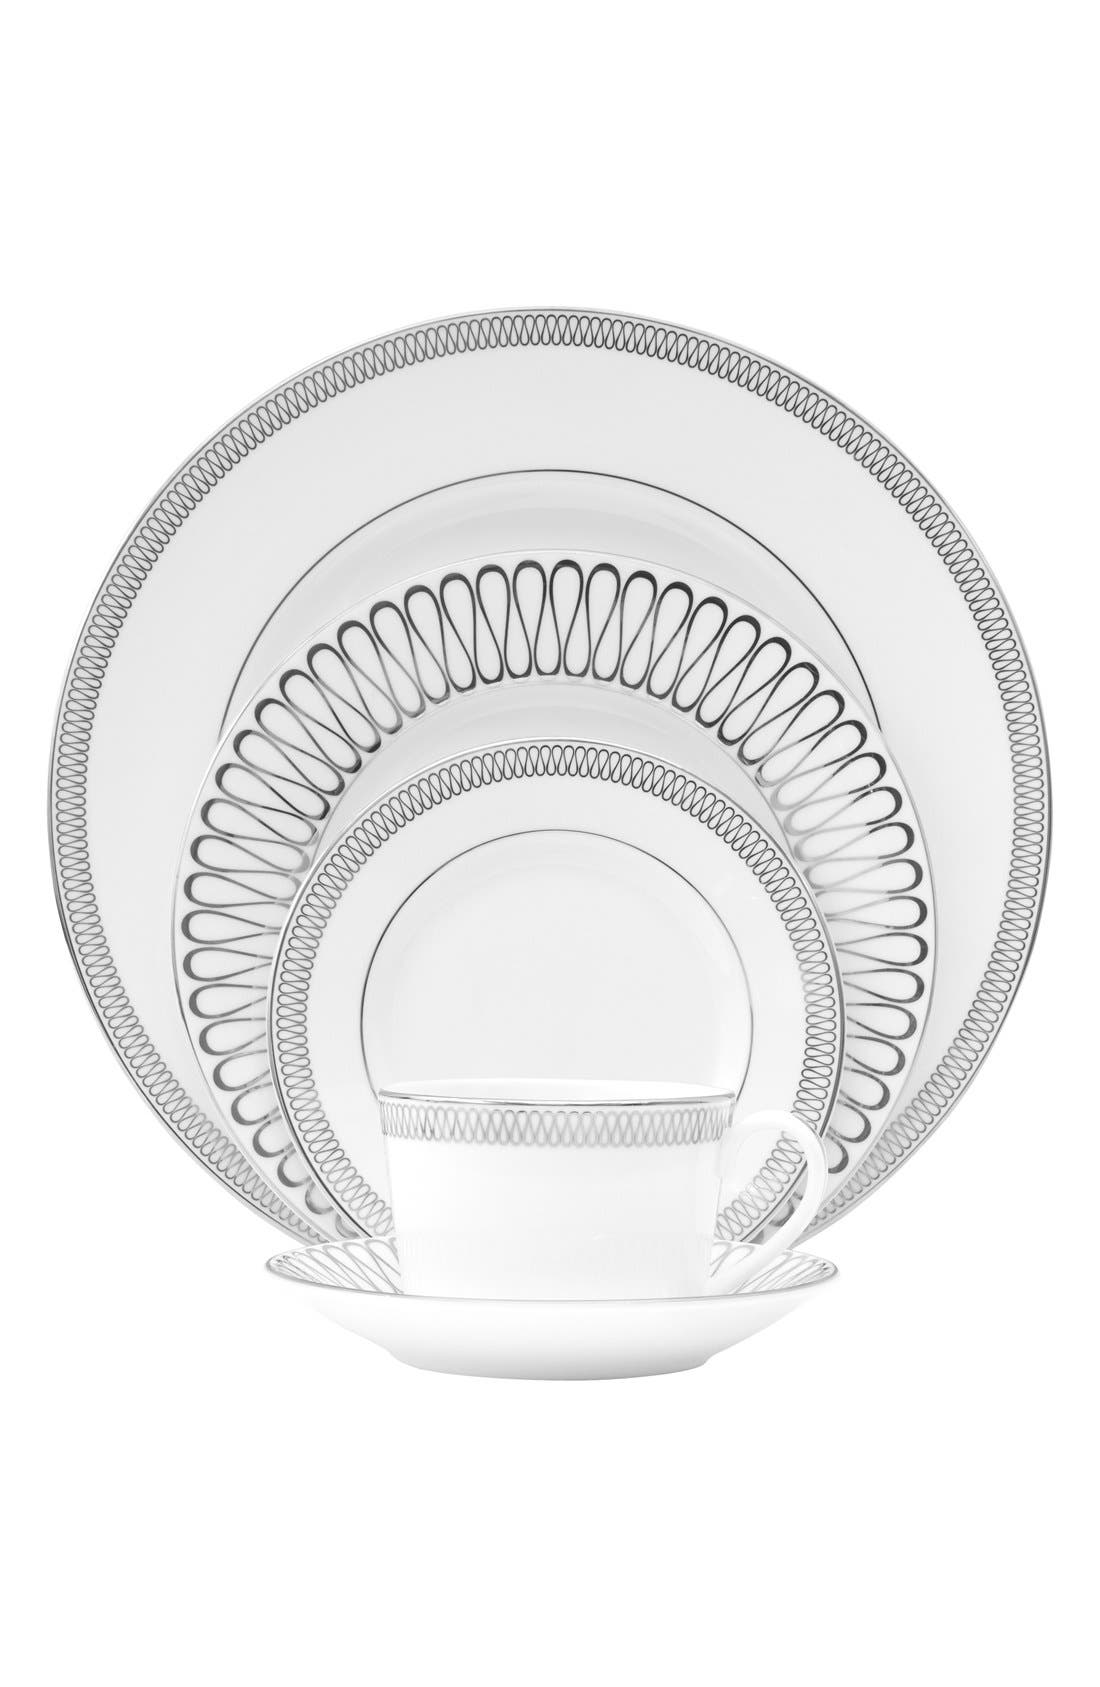 Monique Lhuillier Waterford 'Opulence' 5-Piece China Place Setting,                             Main thumbnail 1, color,